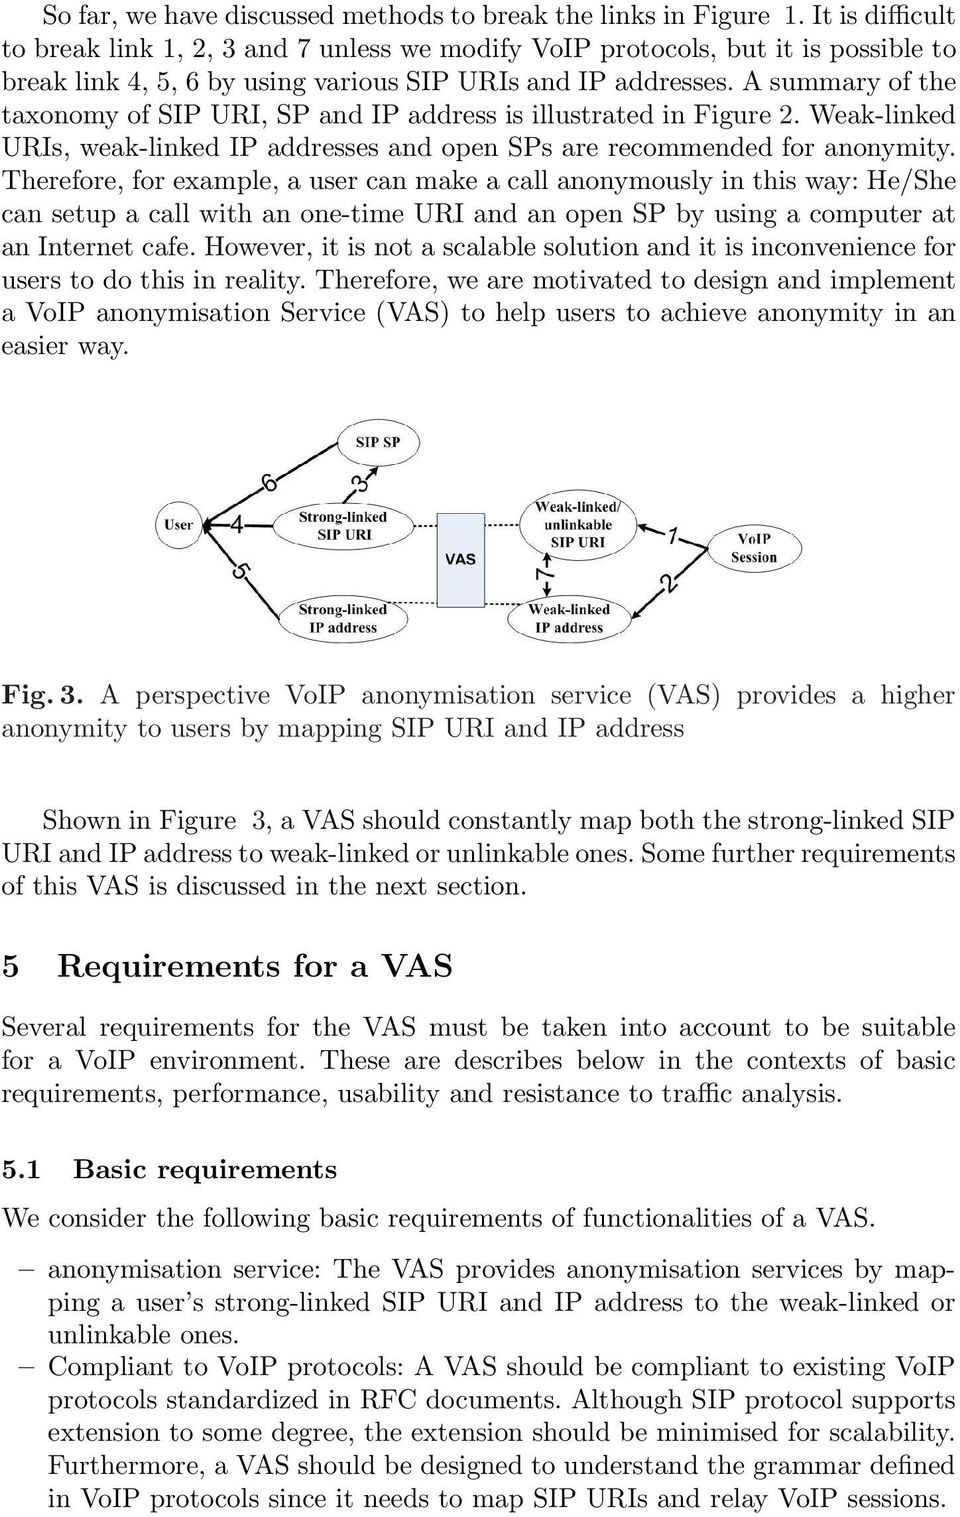 A summary of the taxonomy of SIP URI, SP and IP address is illustrated in Figure 2. Weak-linked URIs, weak-linked IP addresses and open SPs are recommended for anonymity.